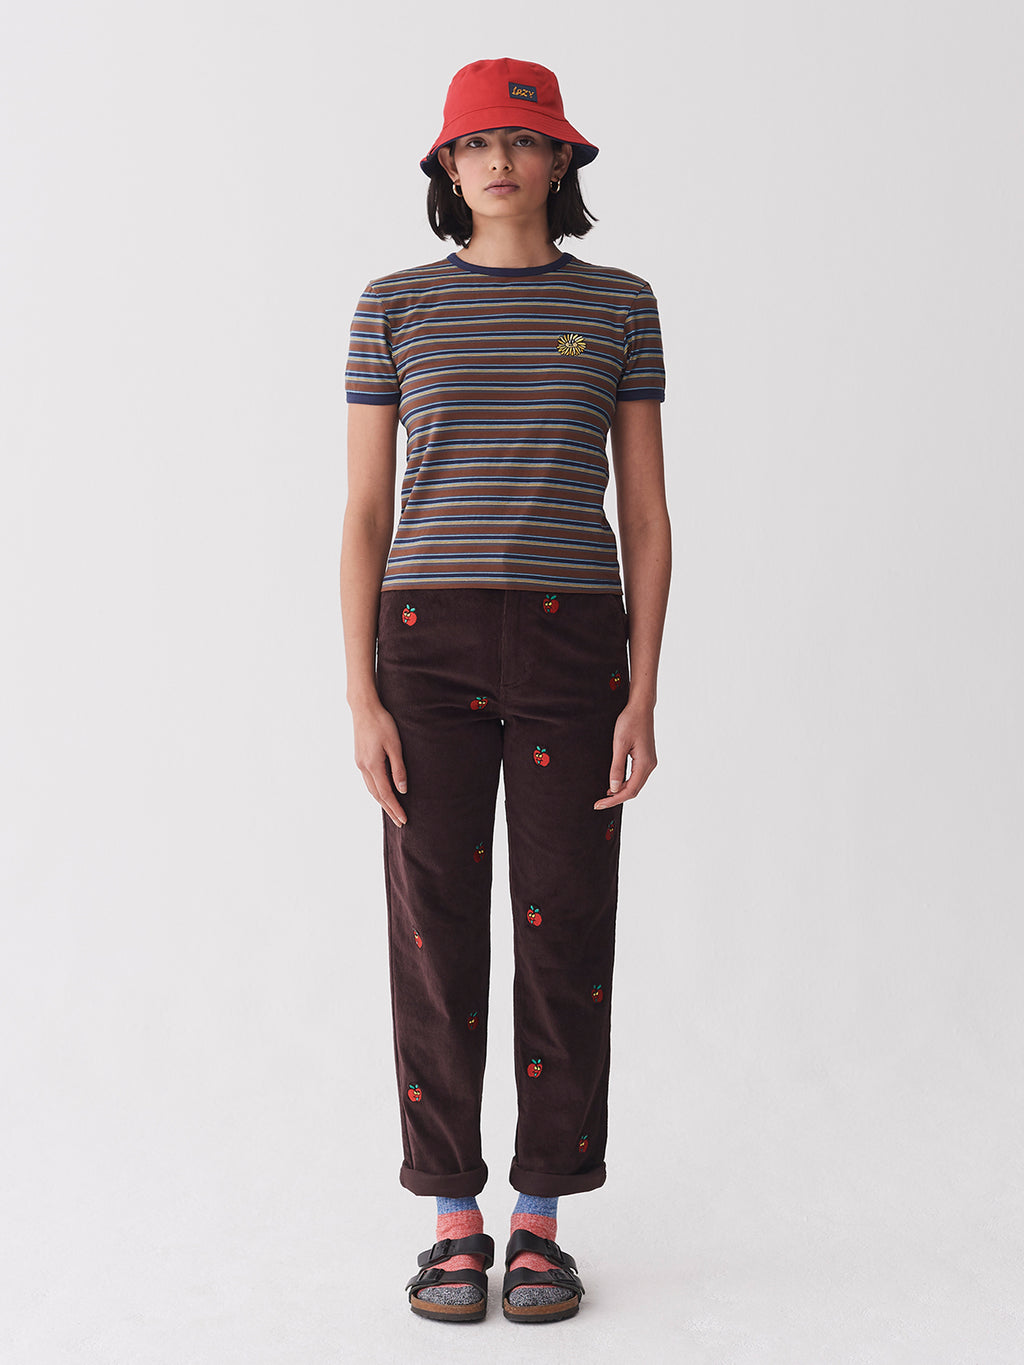 collection-grow-your-own-1 collection-women-new-in-1 collection-womens-trousers